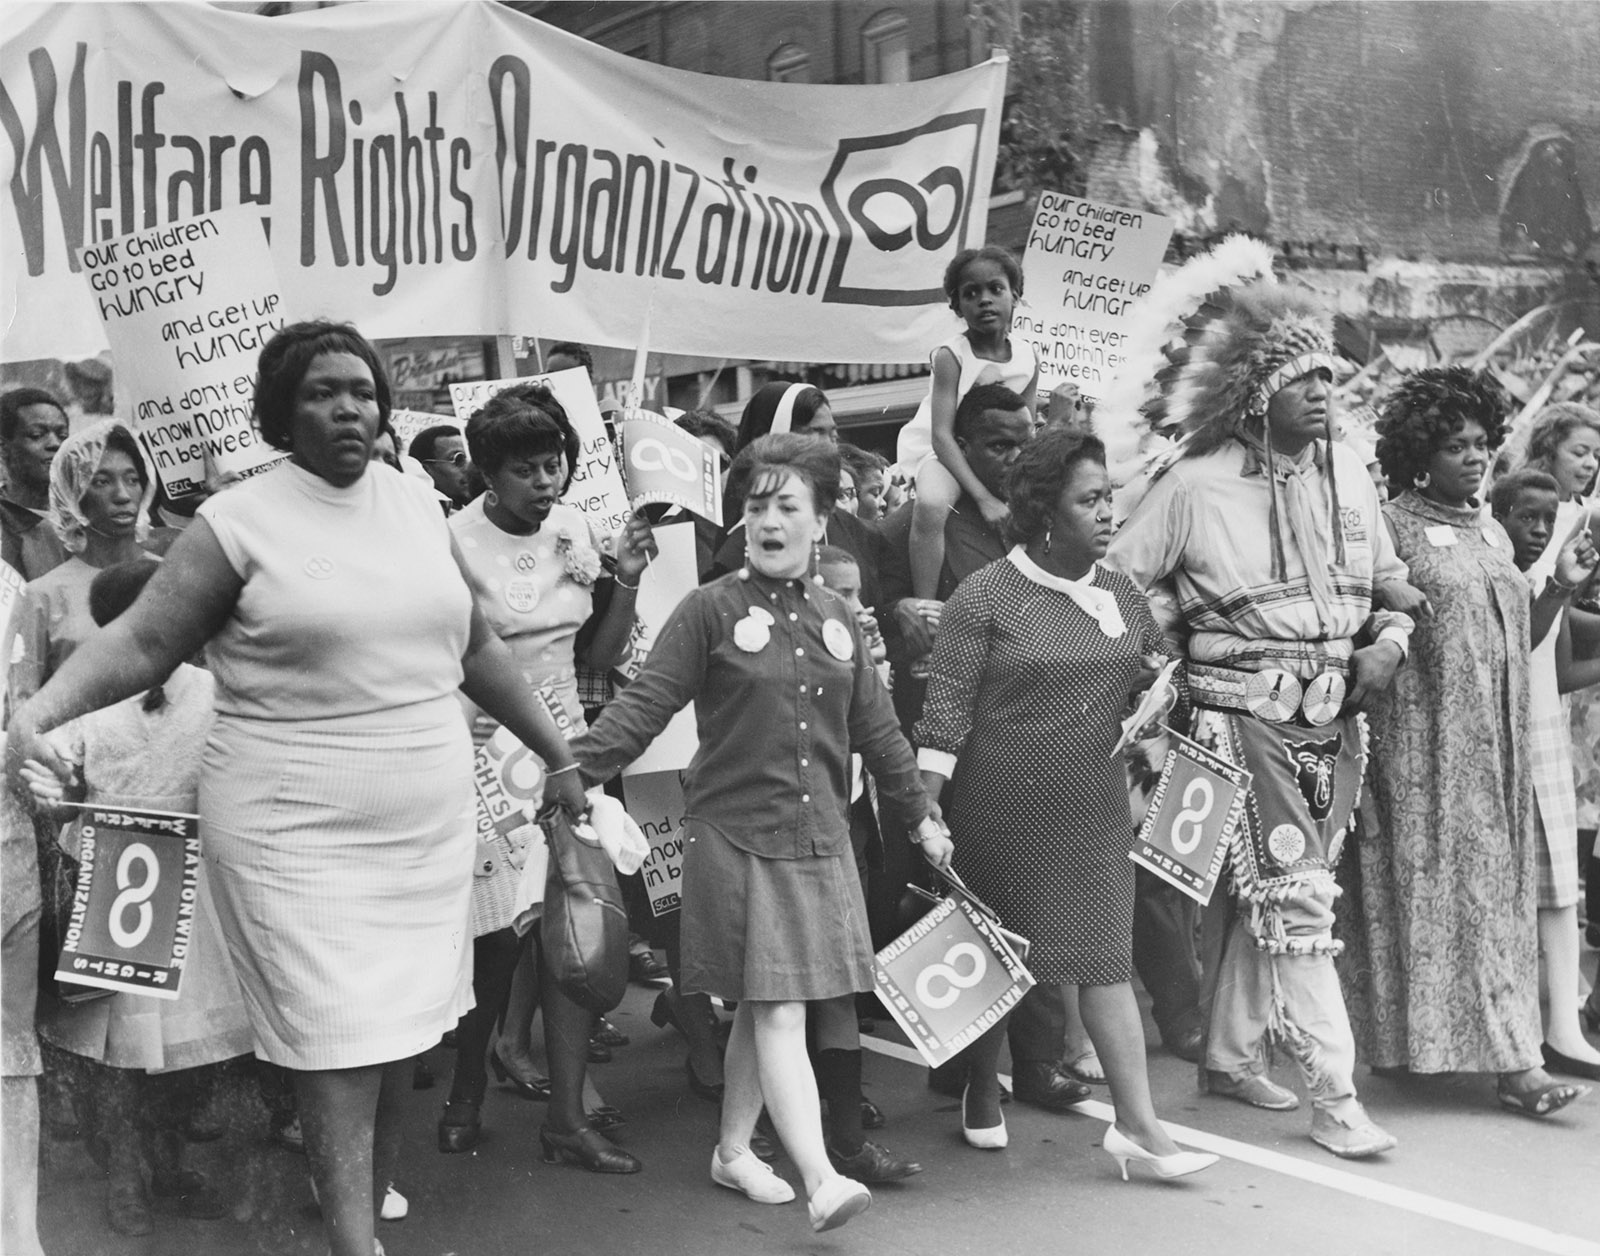 Johnnie Tillmon (left) marching under the NWRO banner in the Poor People's Campaign, Washington, D.C., May–June 1968